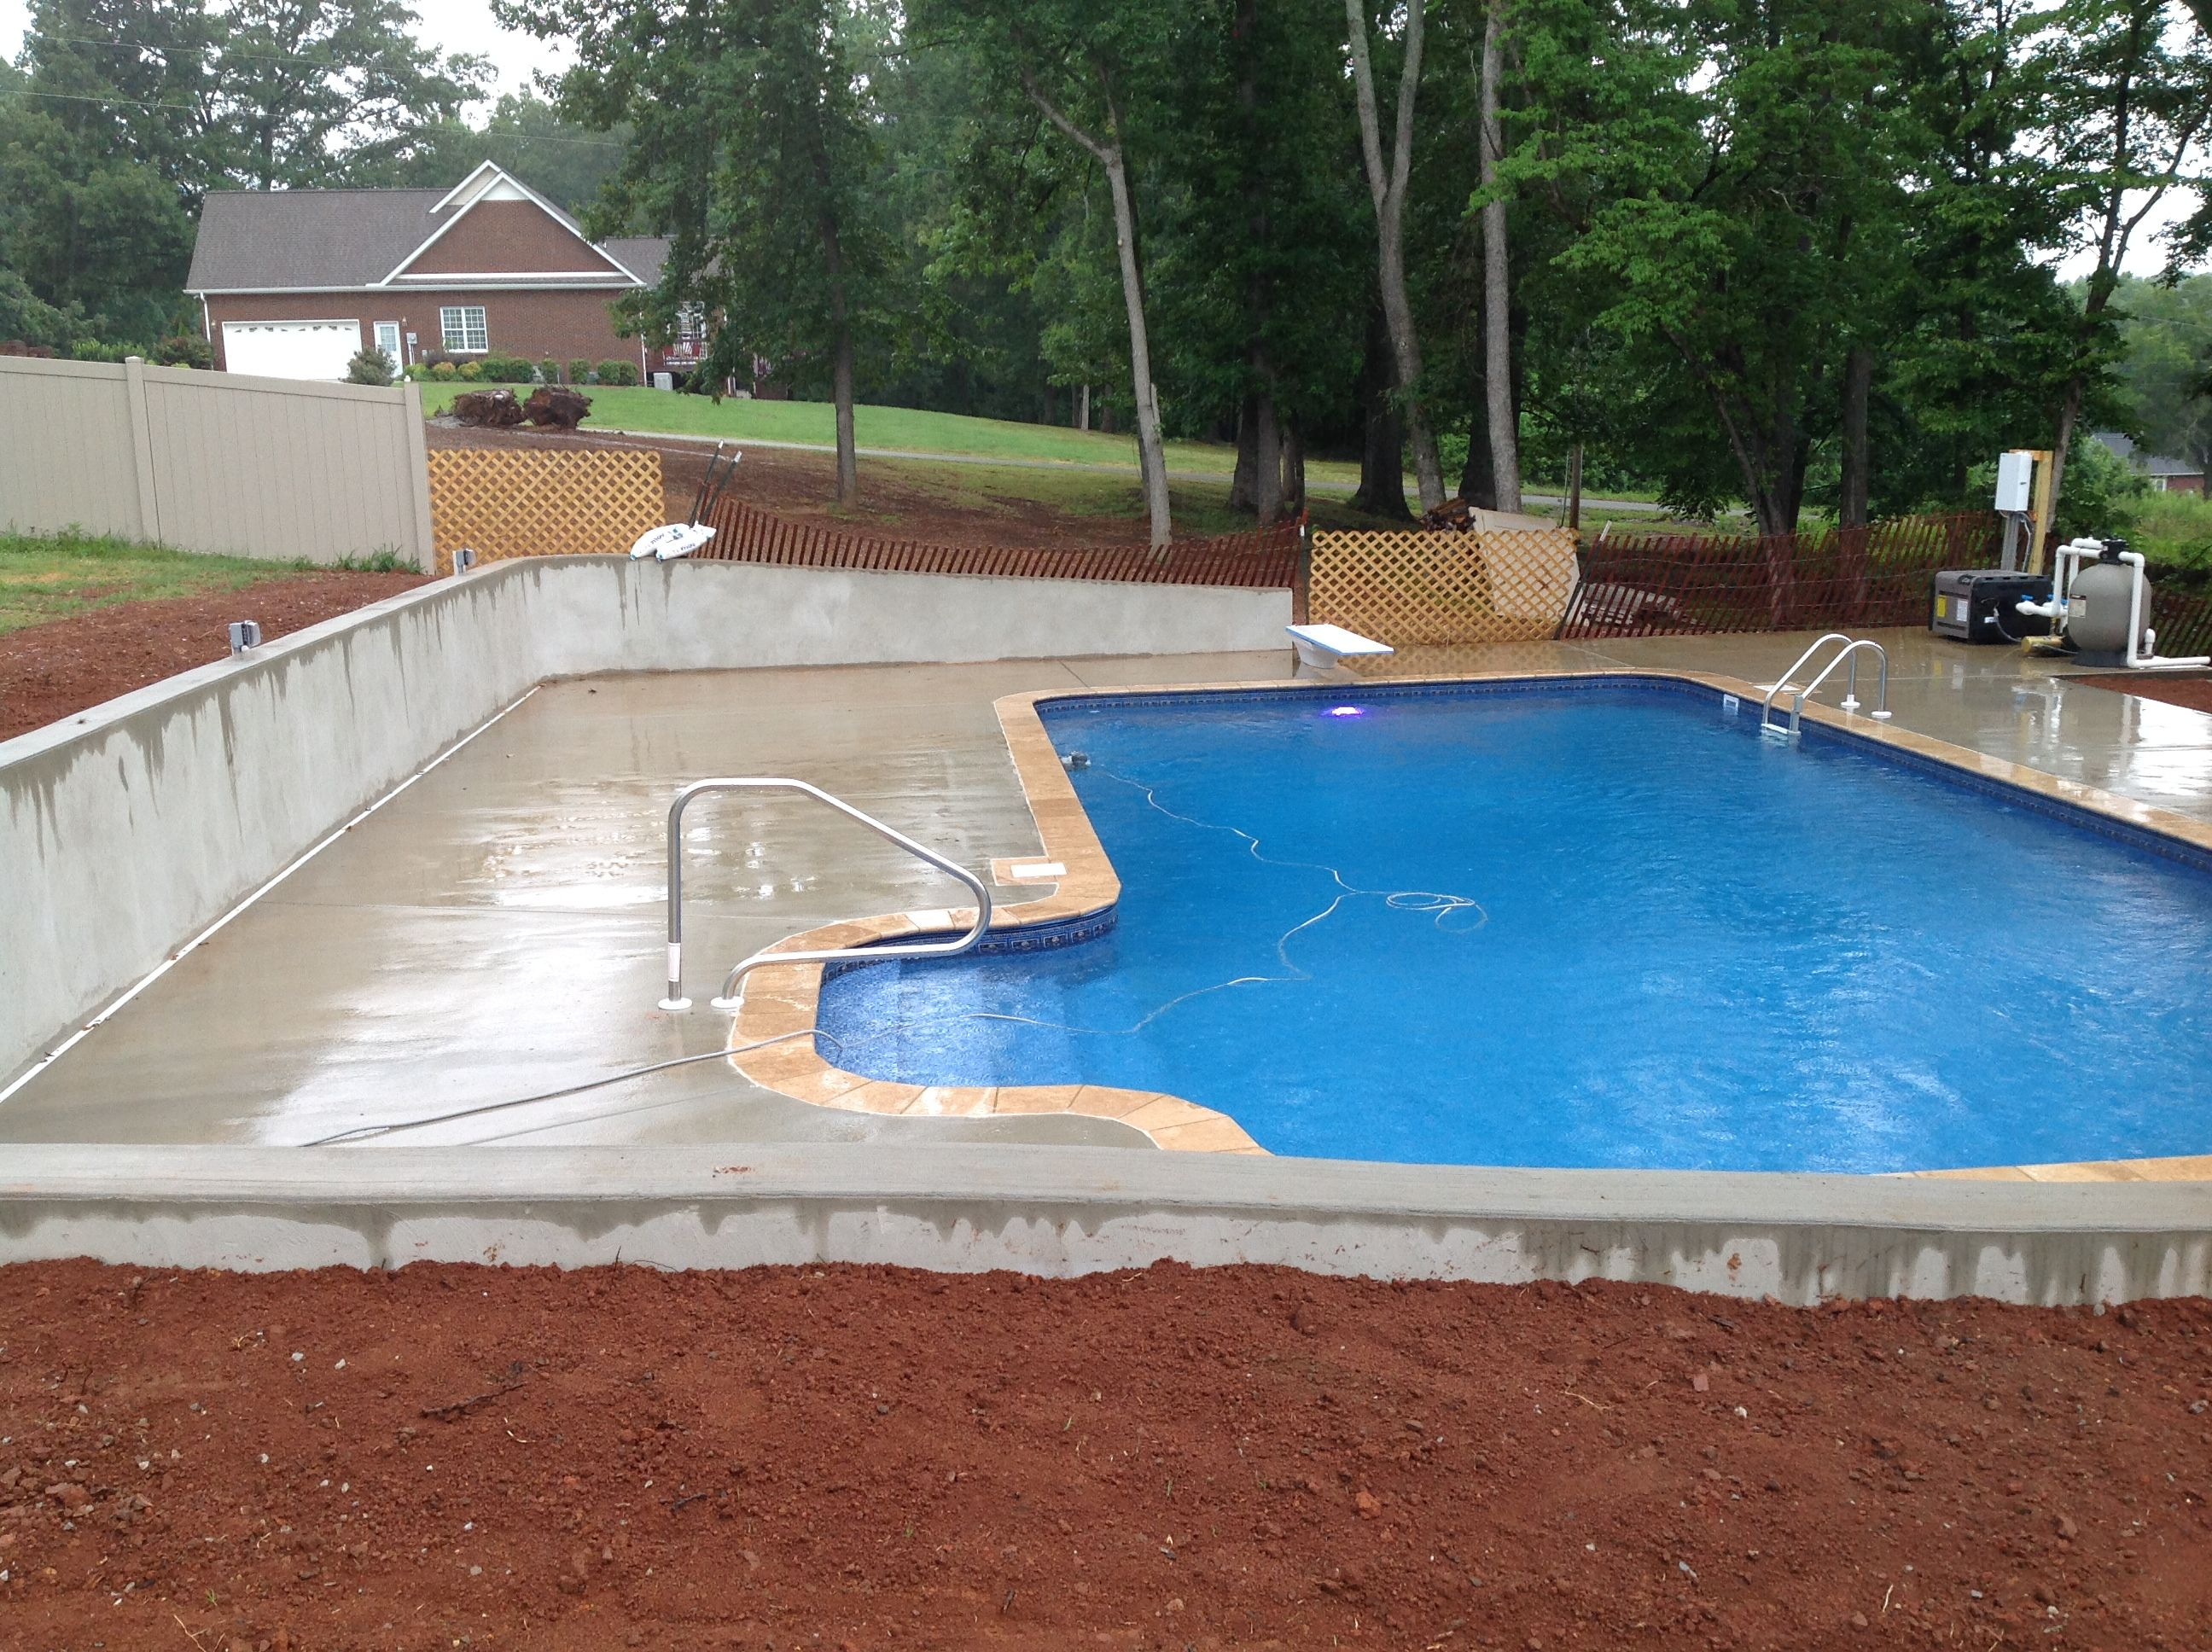 An Idea For Yards With A Slope Concrete Wall Pool With A Concrete Retaining Wall Concrete Retaining Walls Pool Landscaping Backyard Pool